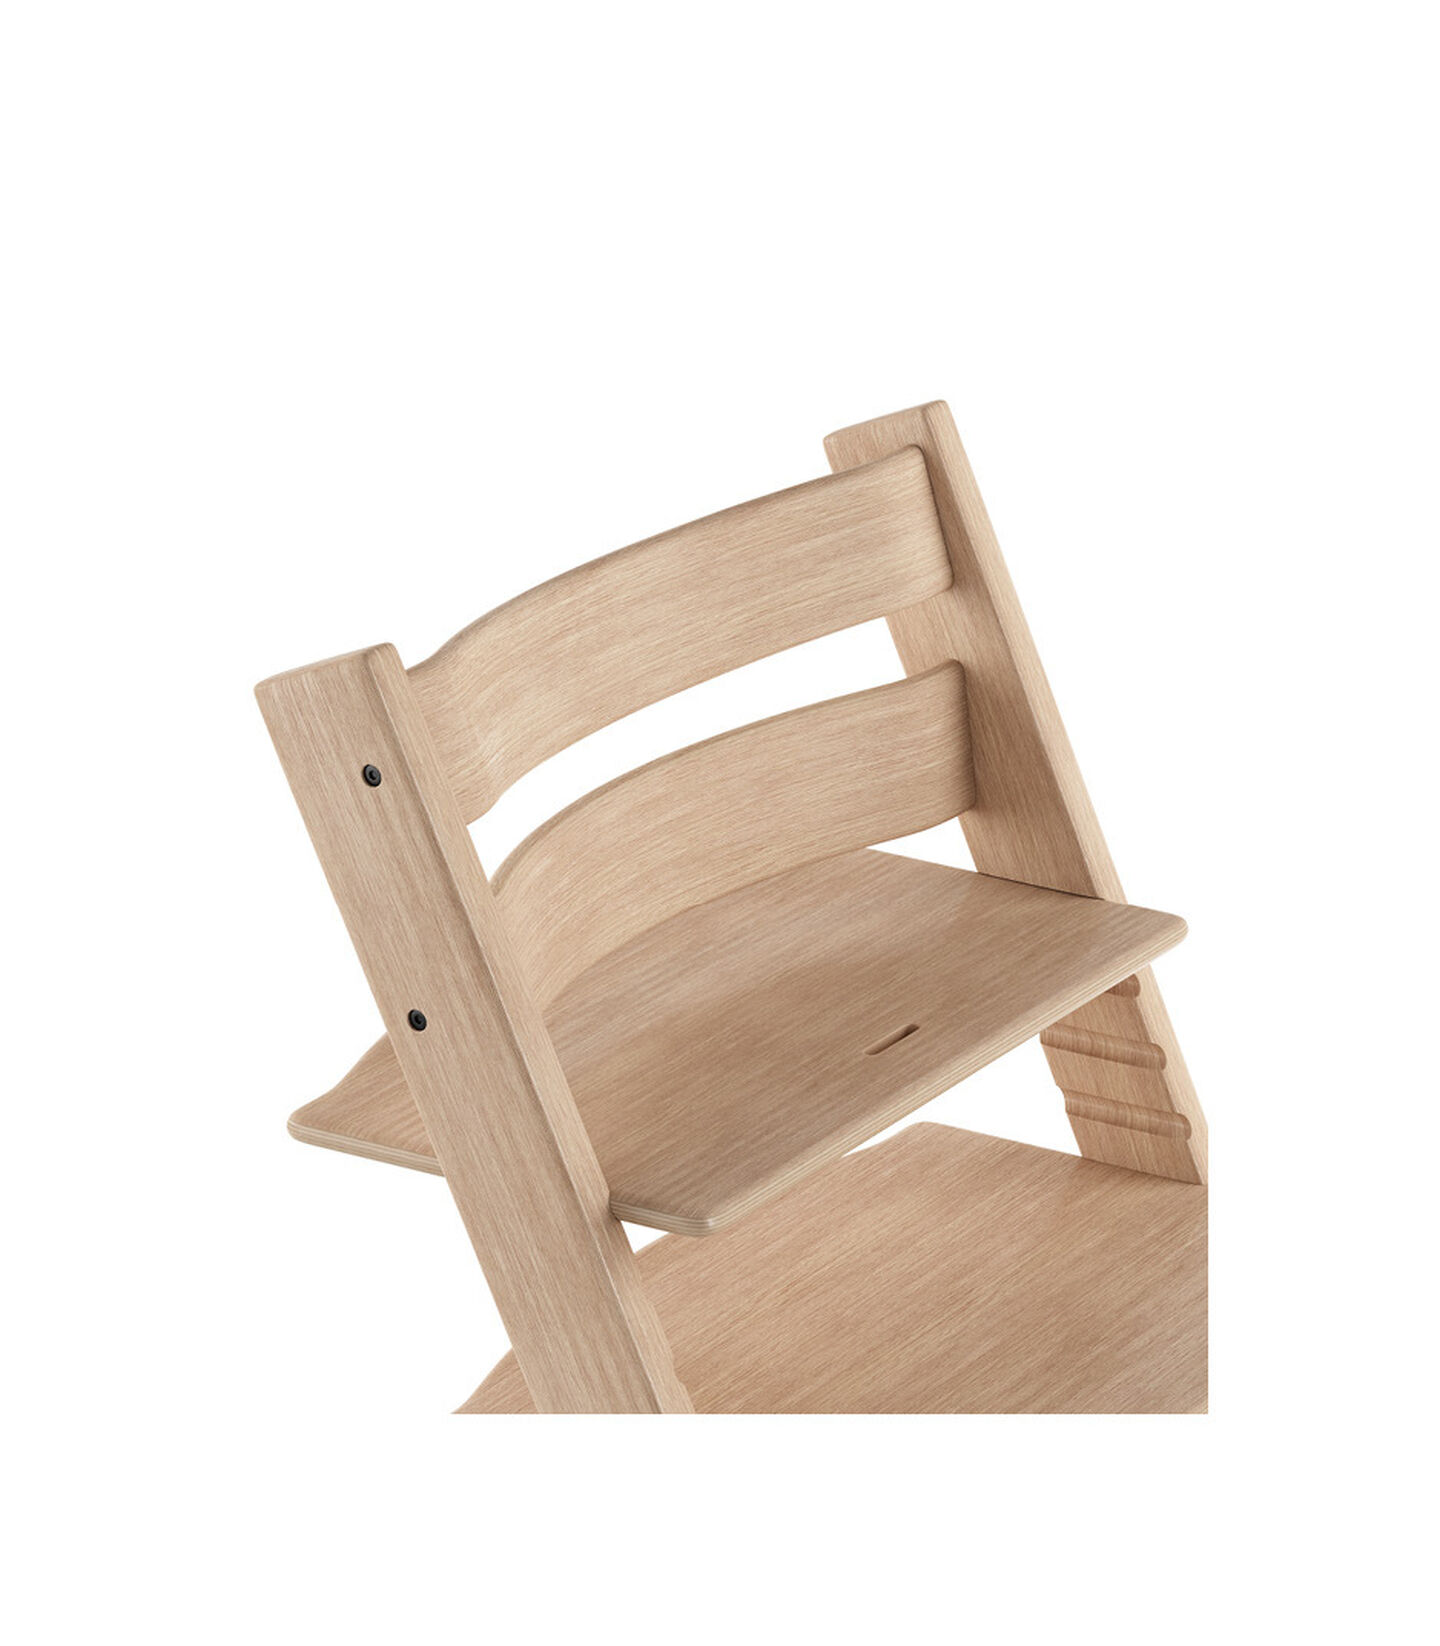 Tripp Trapp® Chair close up 3D rendering Oak Natural